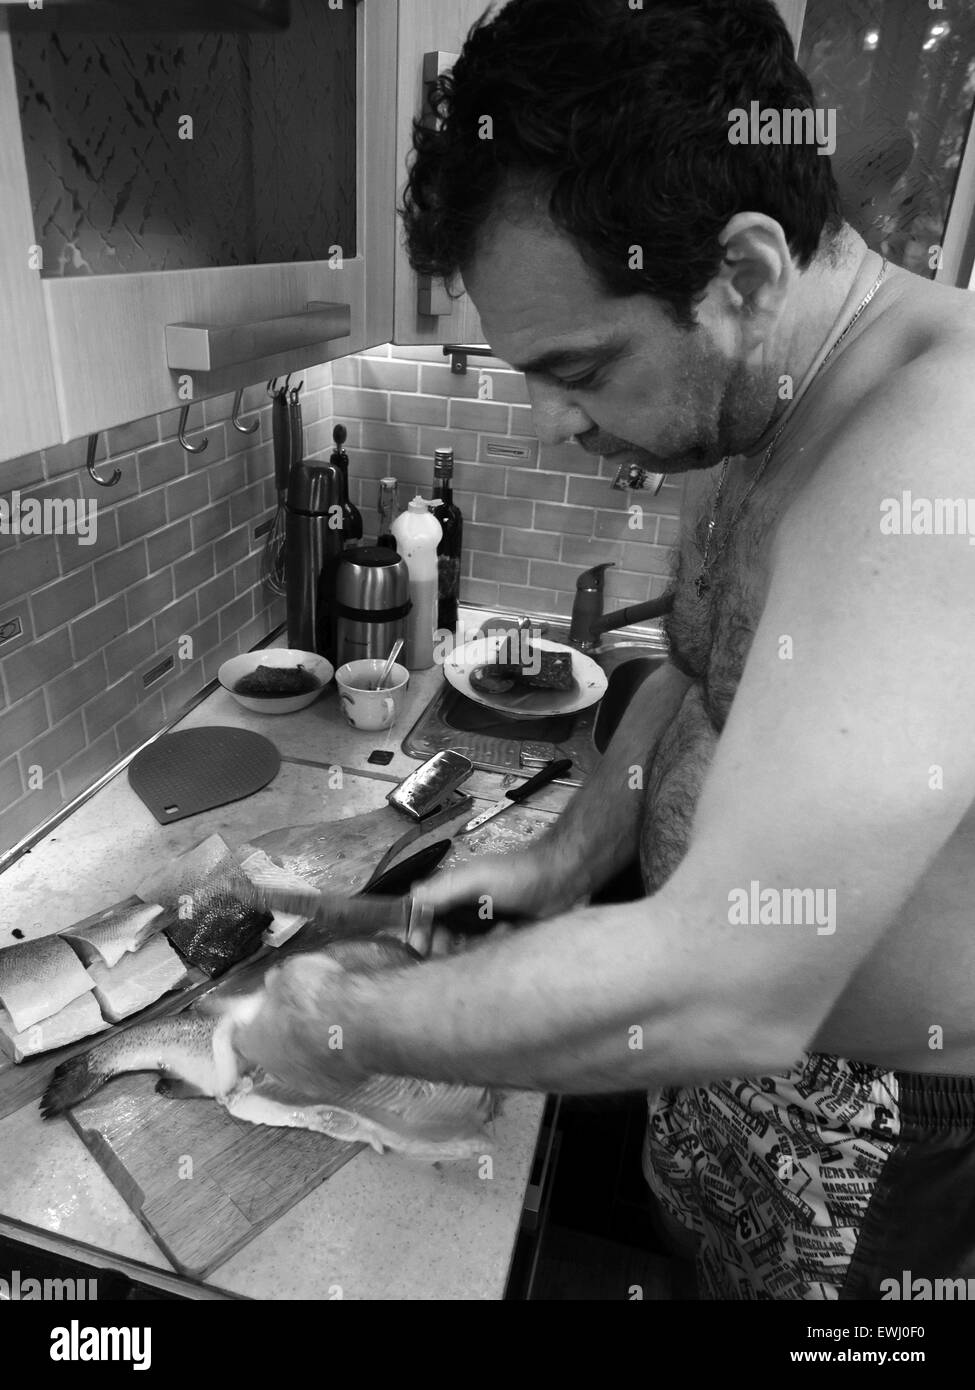 June 13, 2015 - Caucasian middle-aged man in shorts cleans fish trout in the kitchen. Series real people © - Stock Image